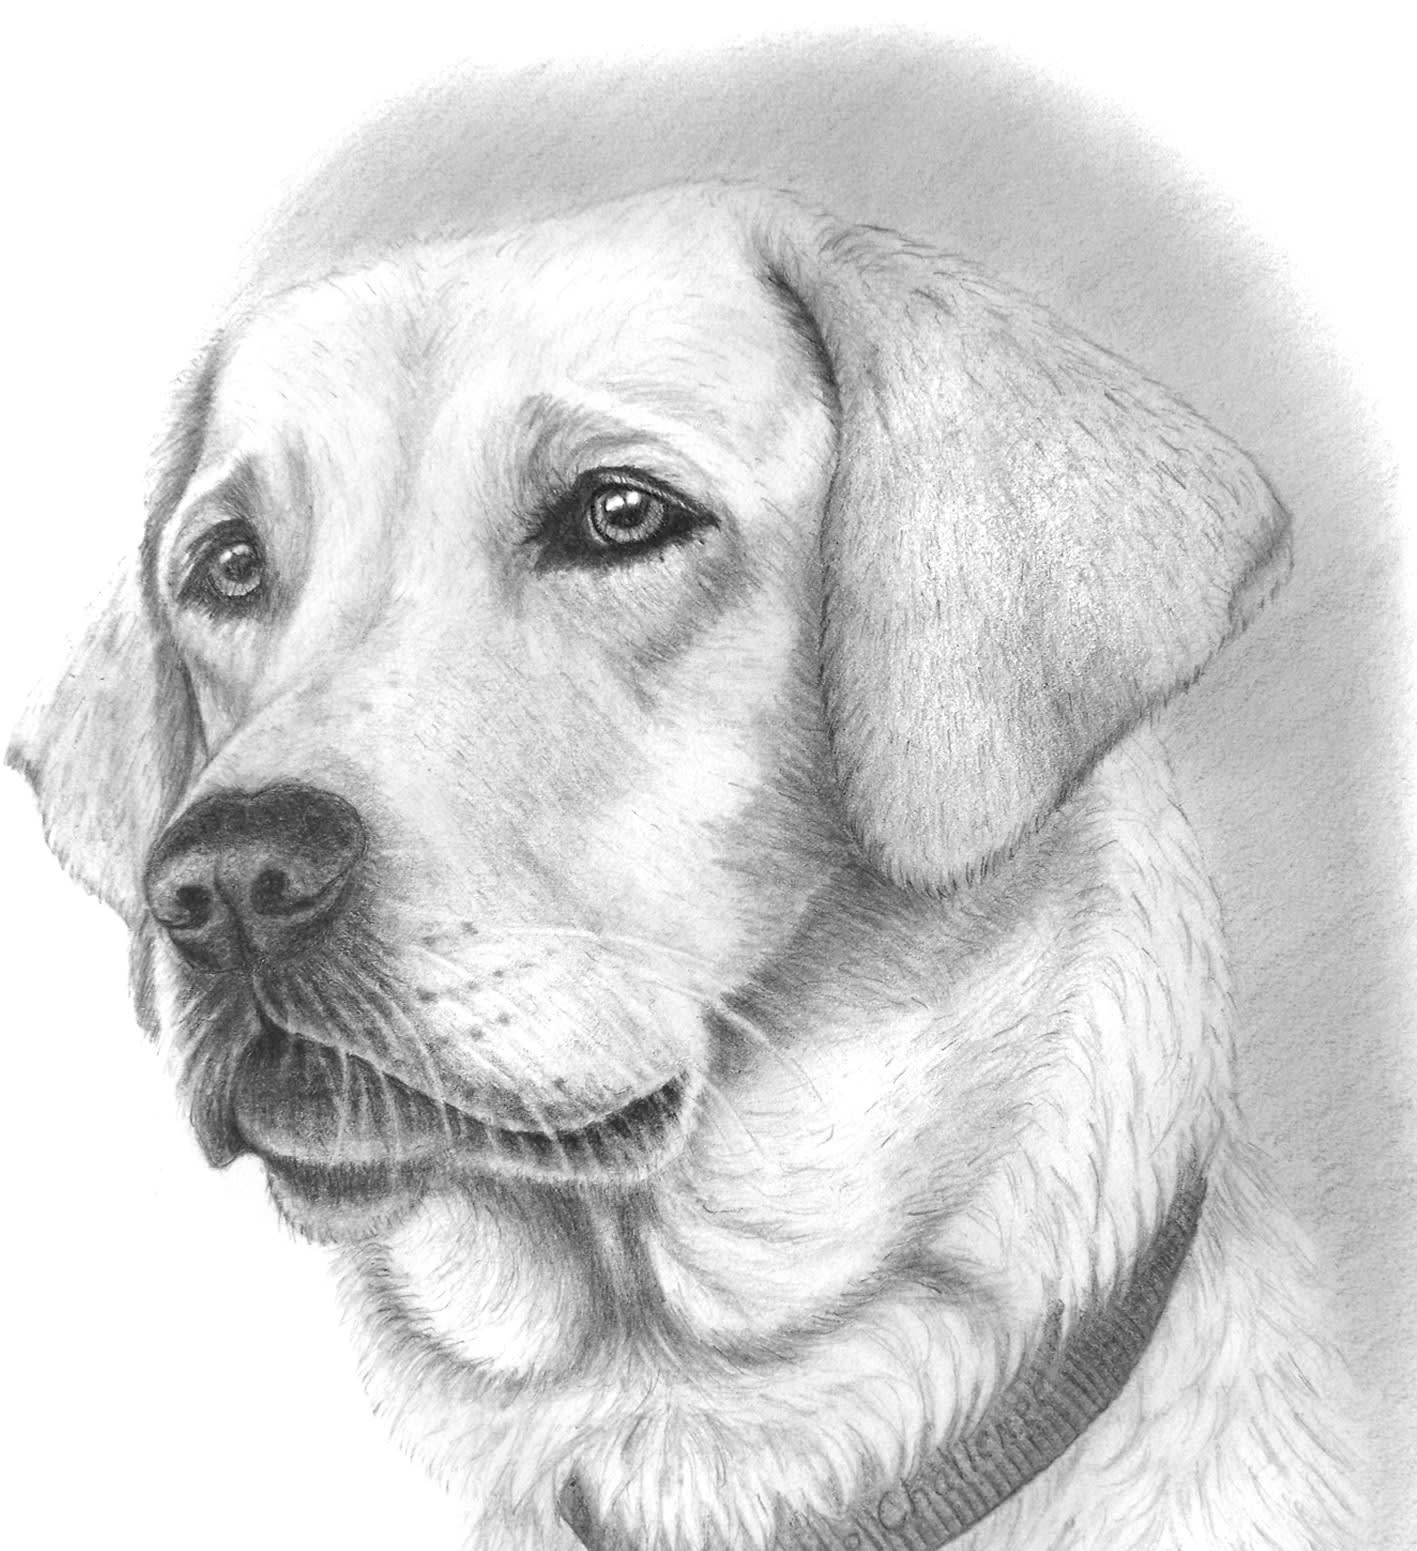 Thetrueh I Will Draw A Lovely Pet Portrait For 10 On Fiverr Com Dog Pencil Drawing Dog Face Drawing Dog Drawing Tutorial [ 1551 x 1417 Pixel ]